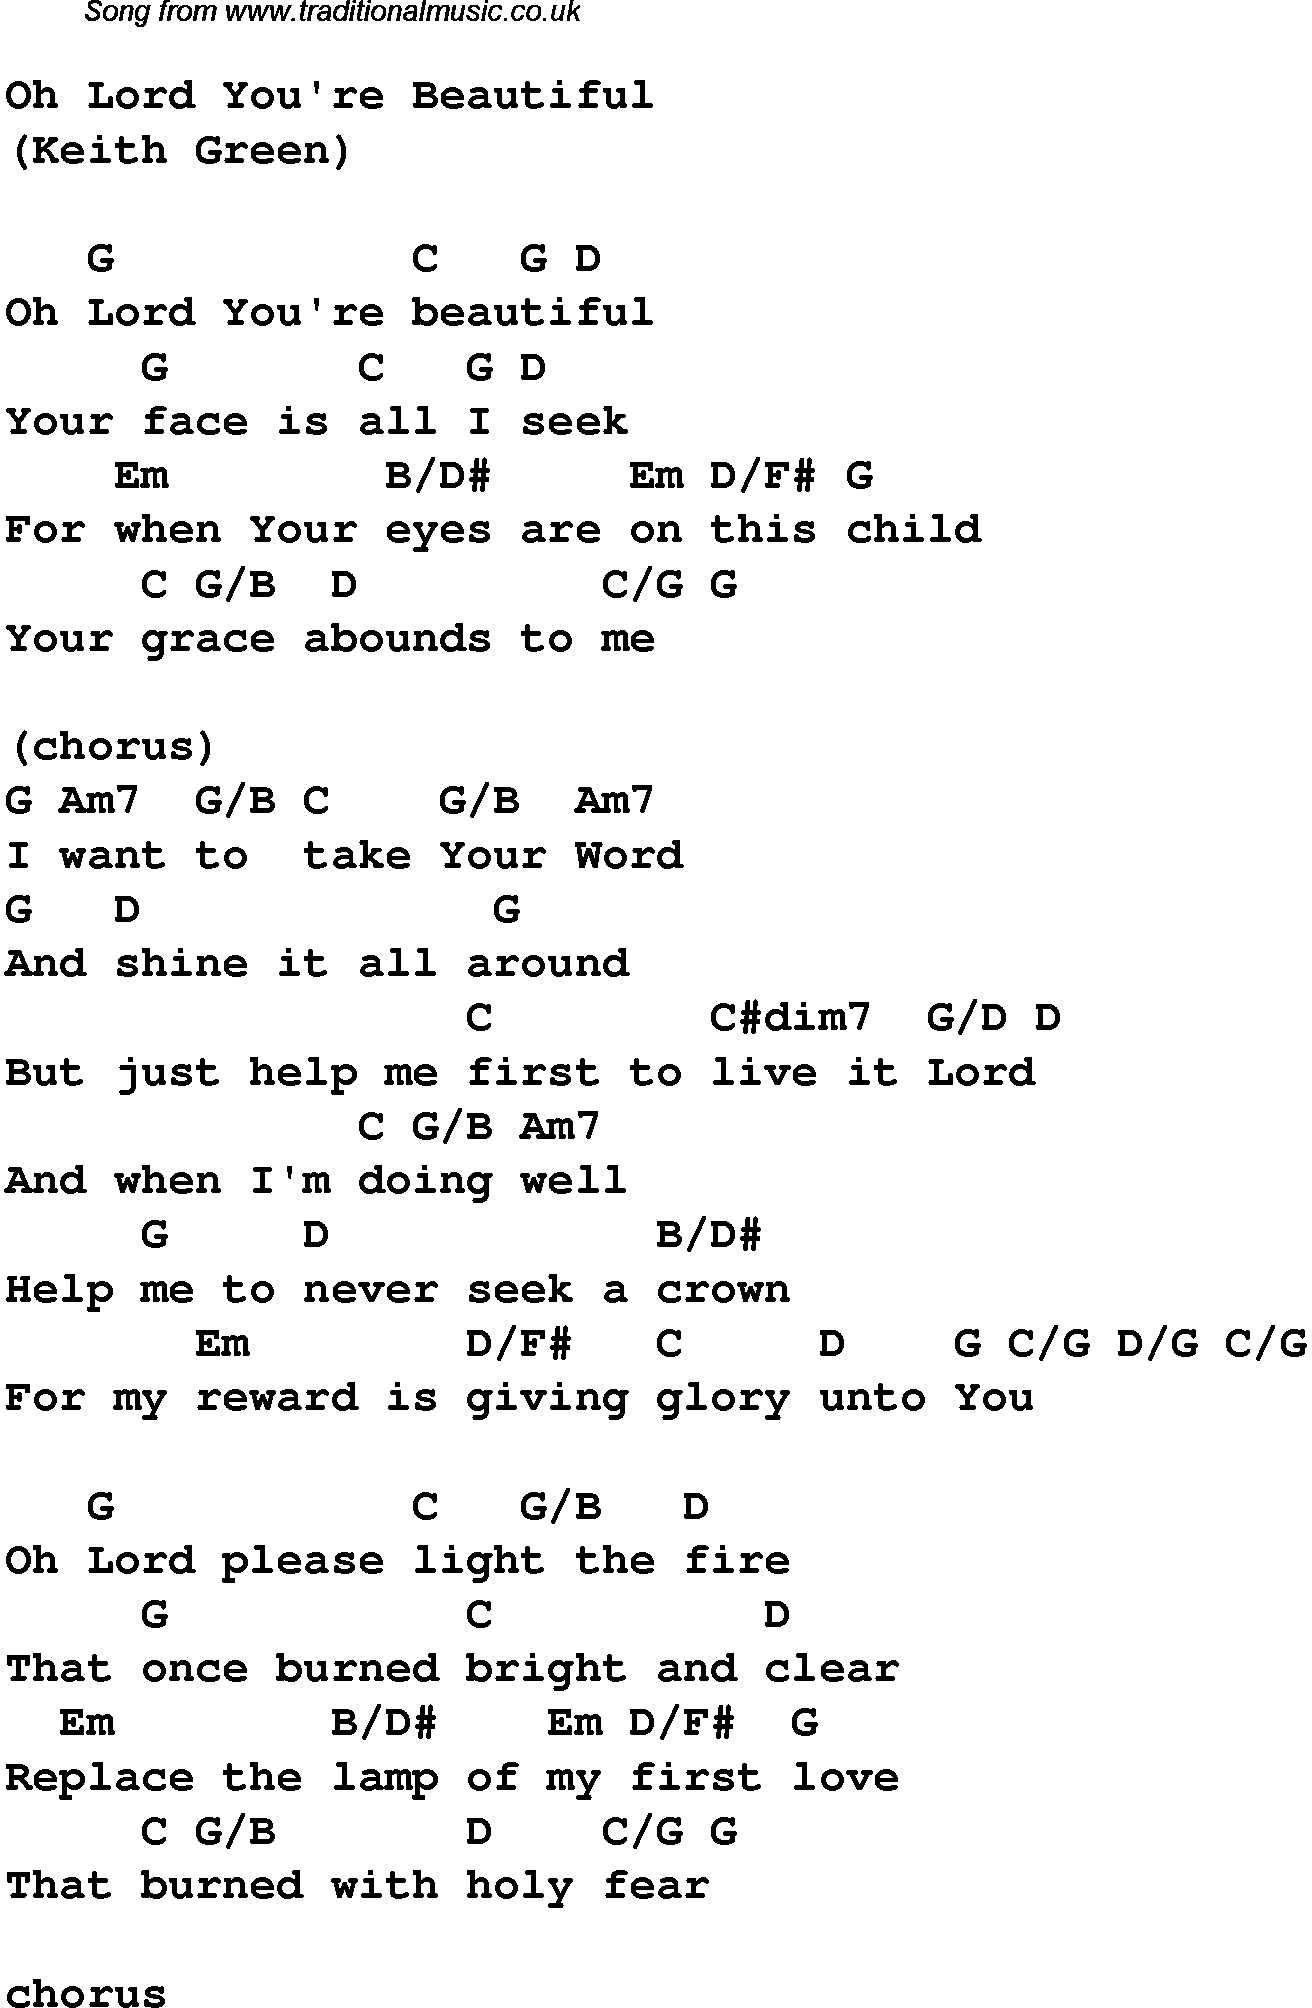 Christian music chords and lyrics christian music worship song christian music chords and lyrics christian music worship song lyrics and chords for oh hexwebz Image collections